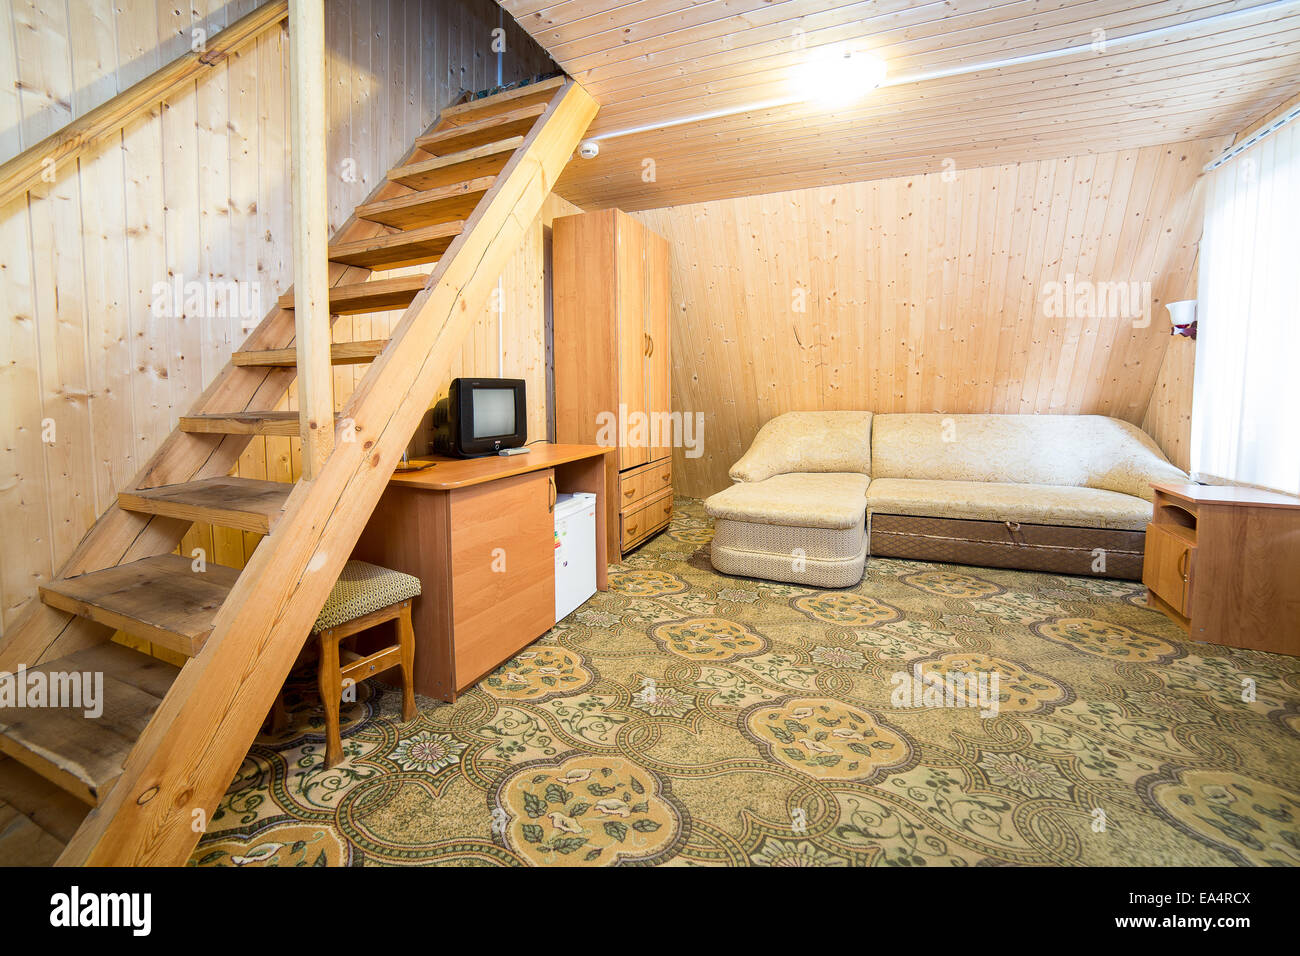 Staircase Carpet Nobody Stockfotos & Staircase Carpet Nobody Bilder ...